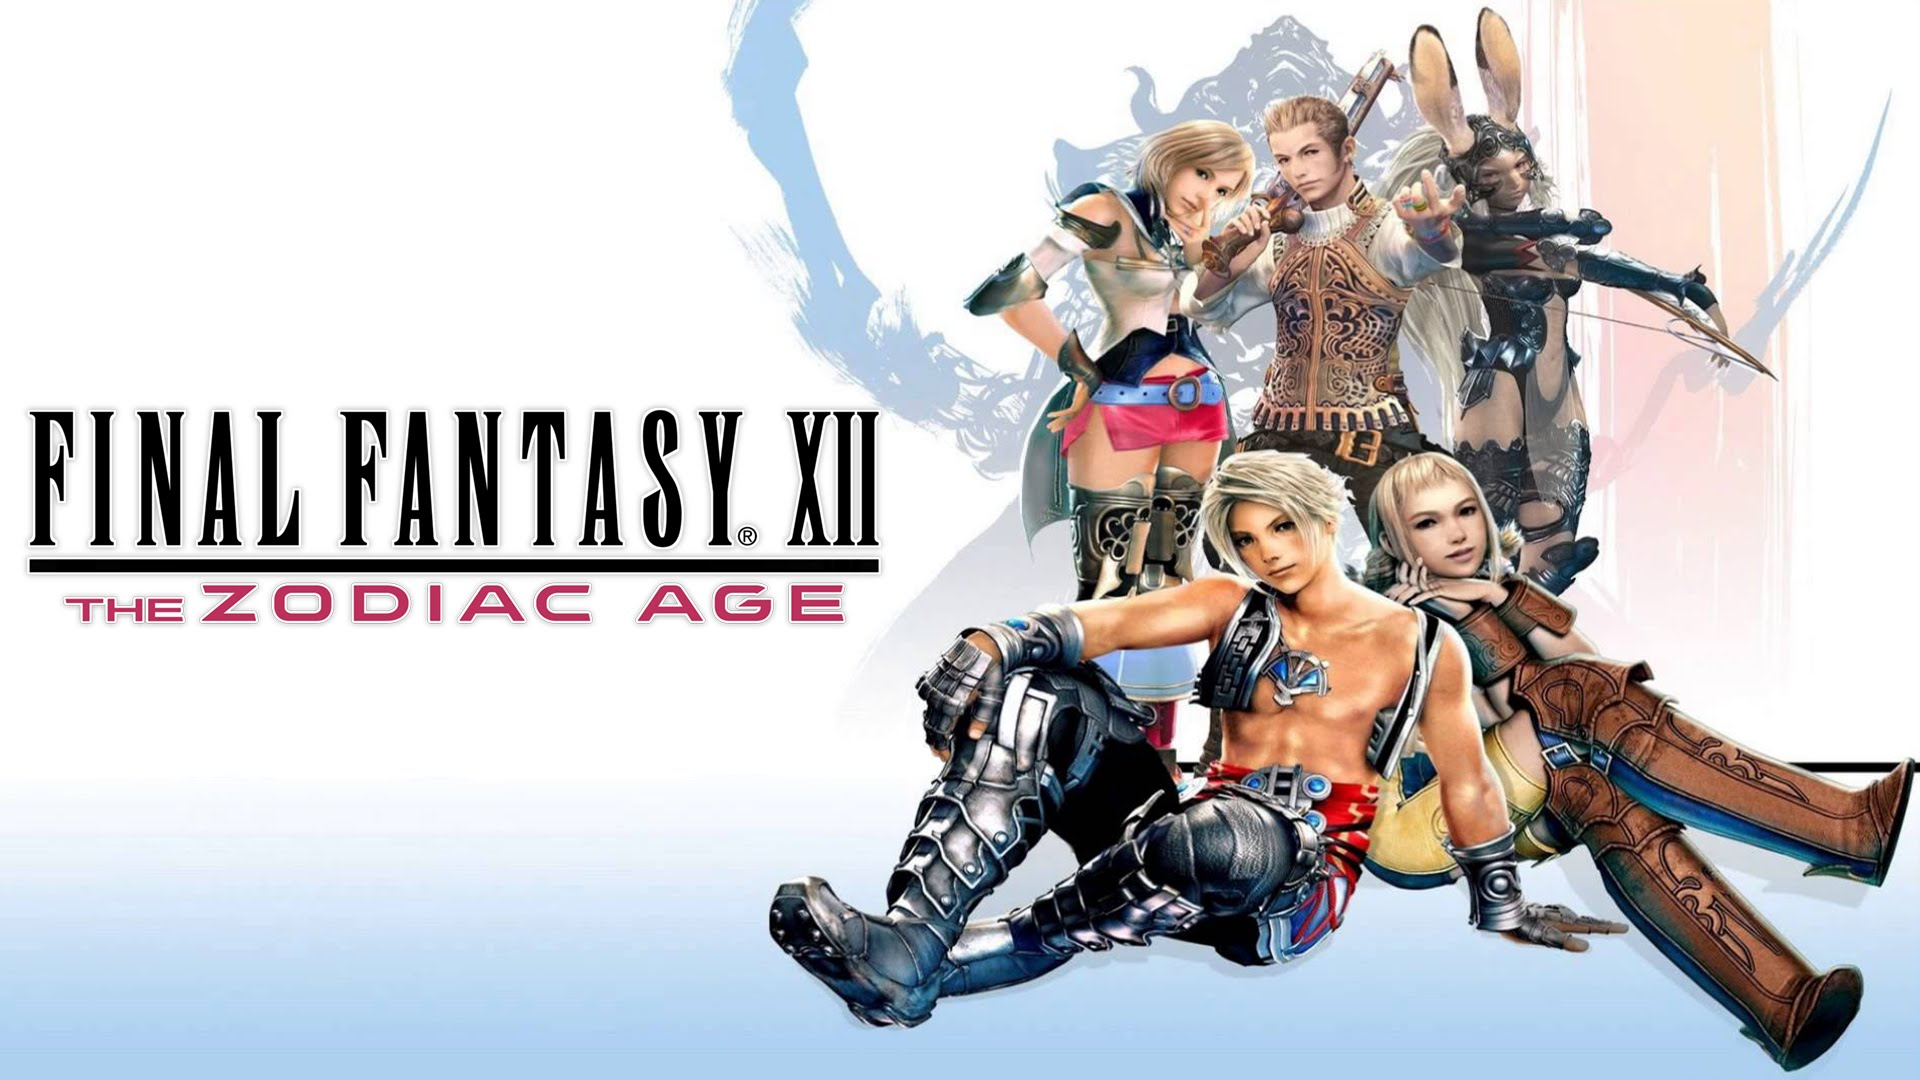 Final fantasy xii: the zodiac age/ ff12: tza] vinuskar boss guide.